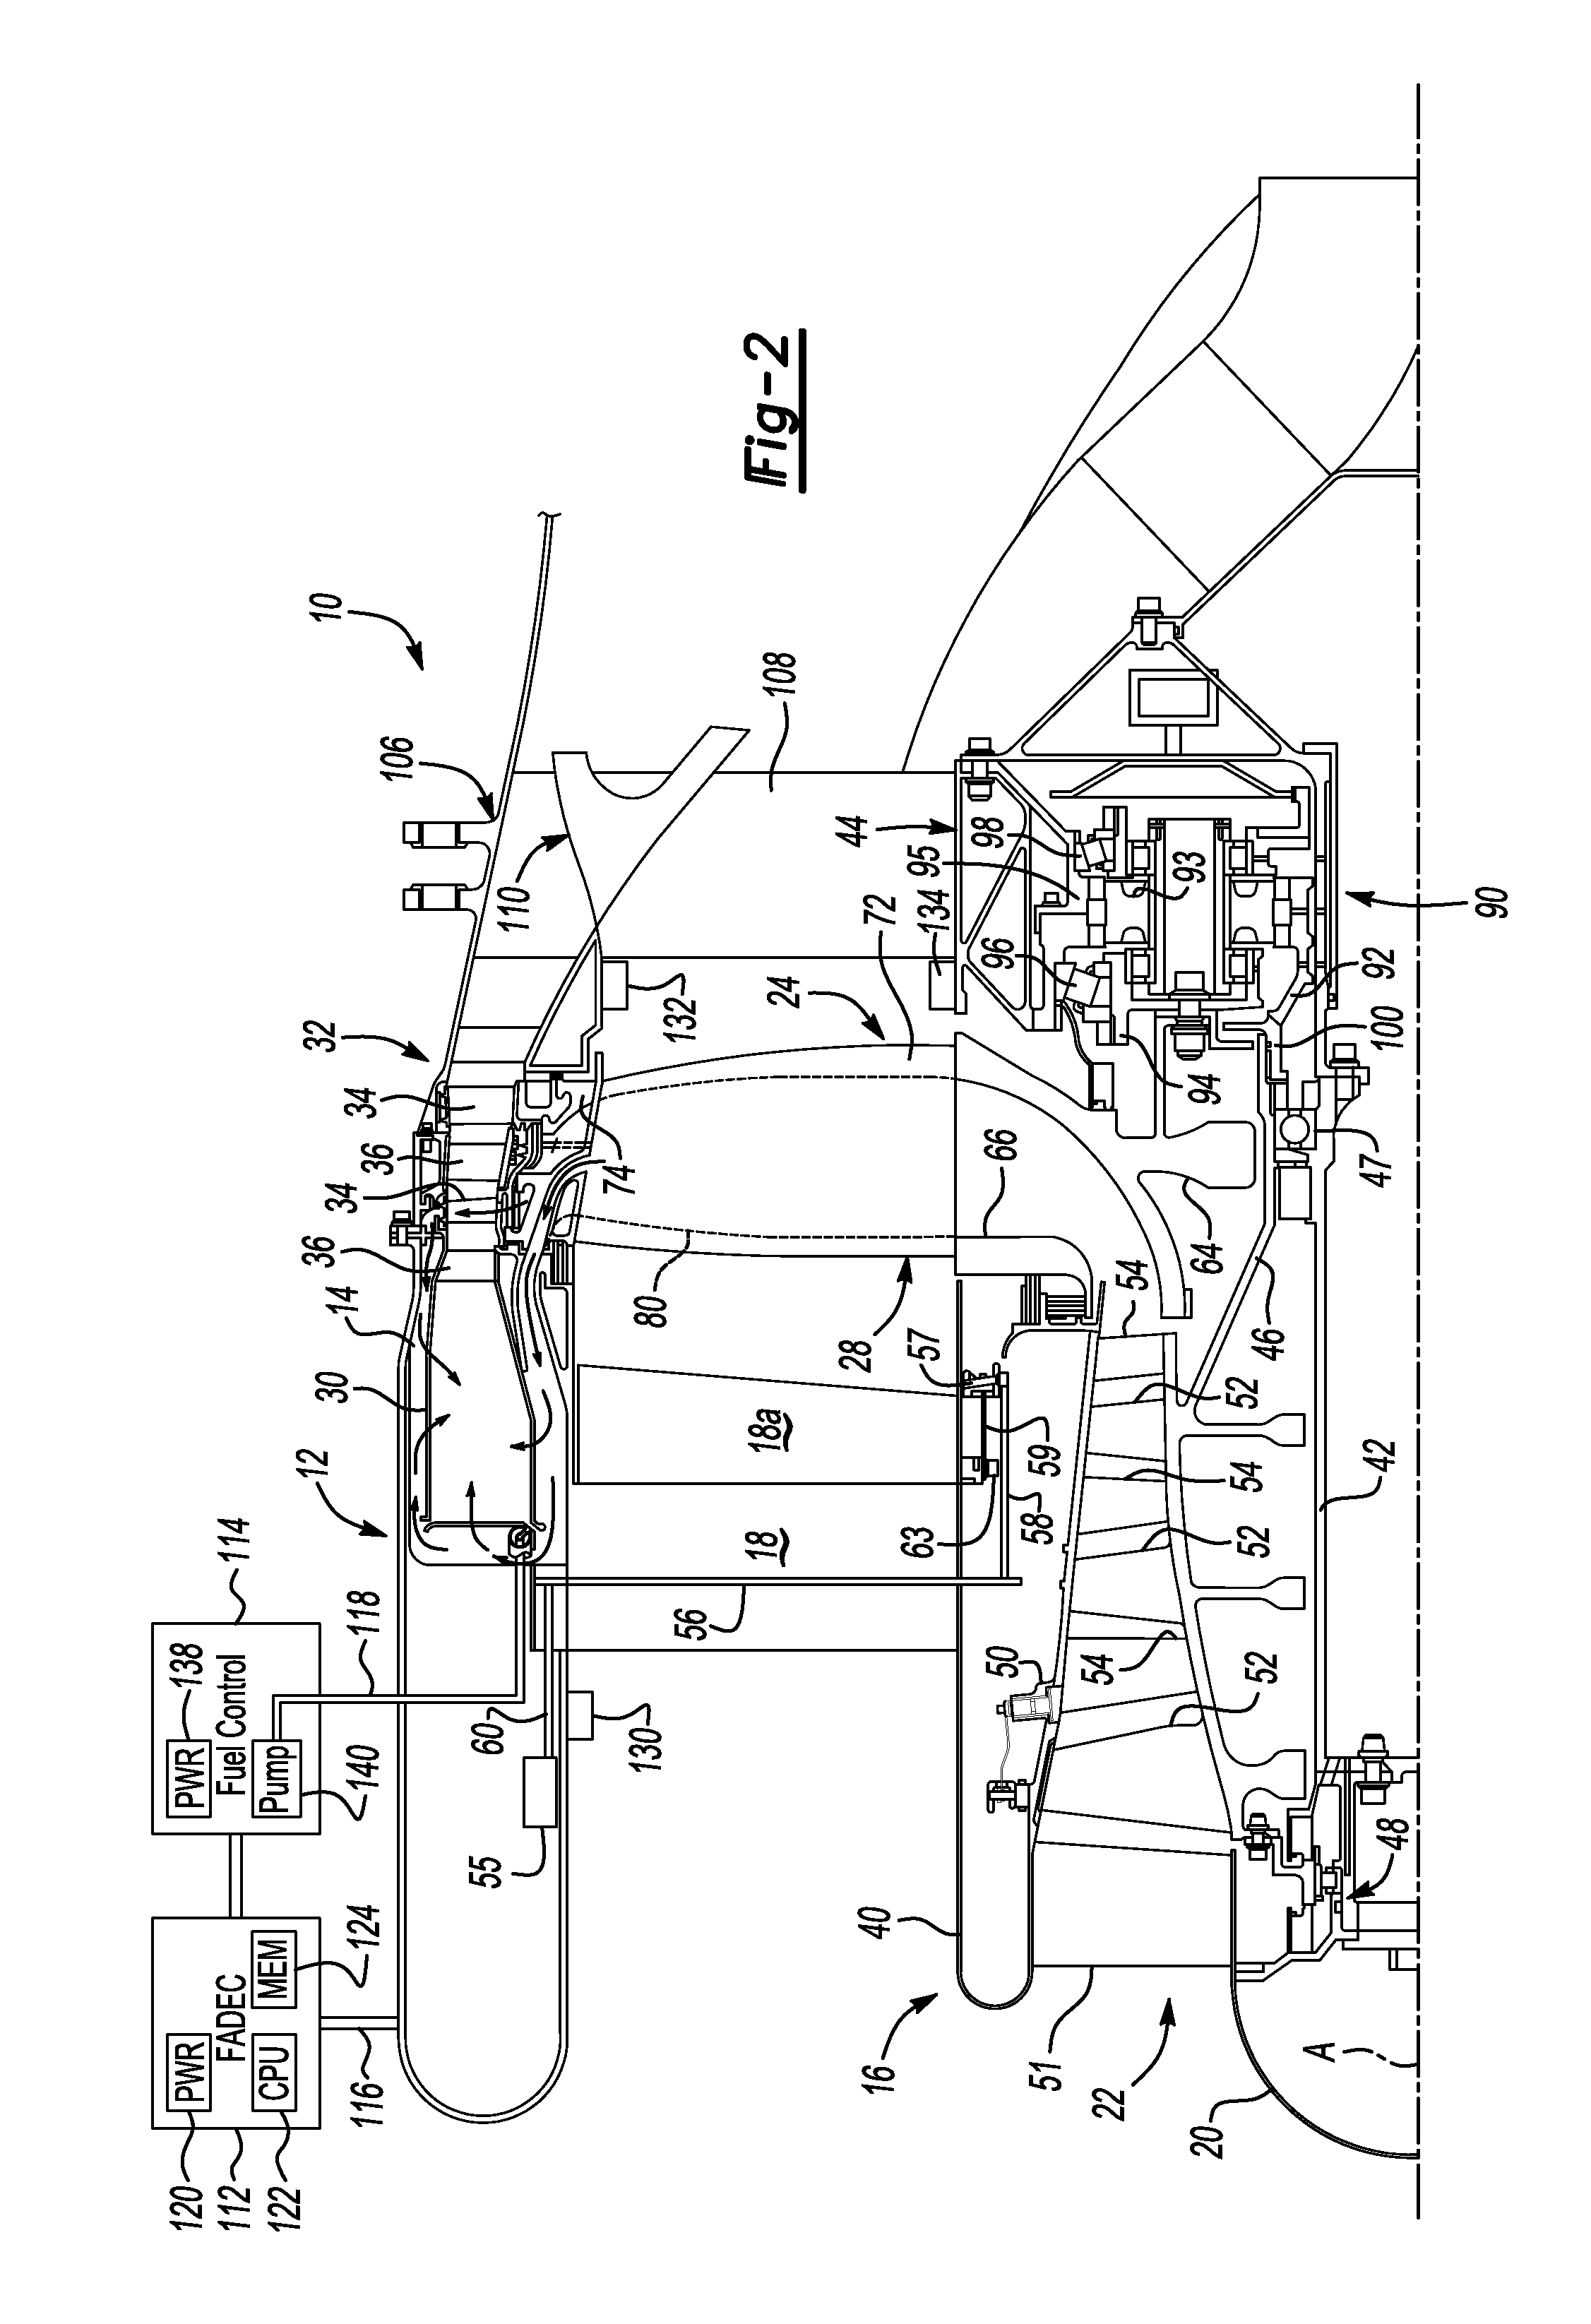 patent us20130019585 - variable fan inlet guide vane for turbine engine